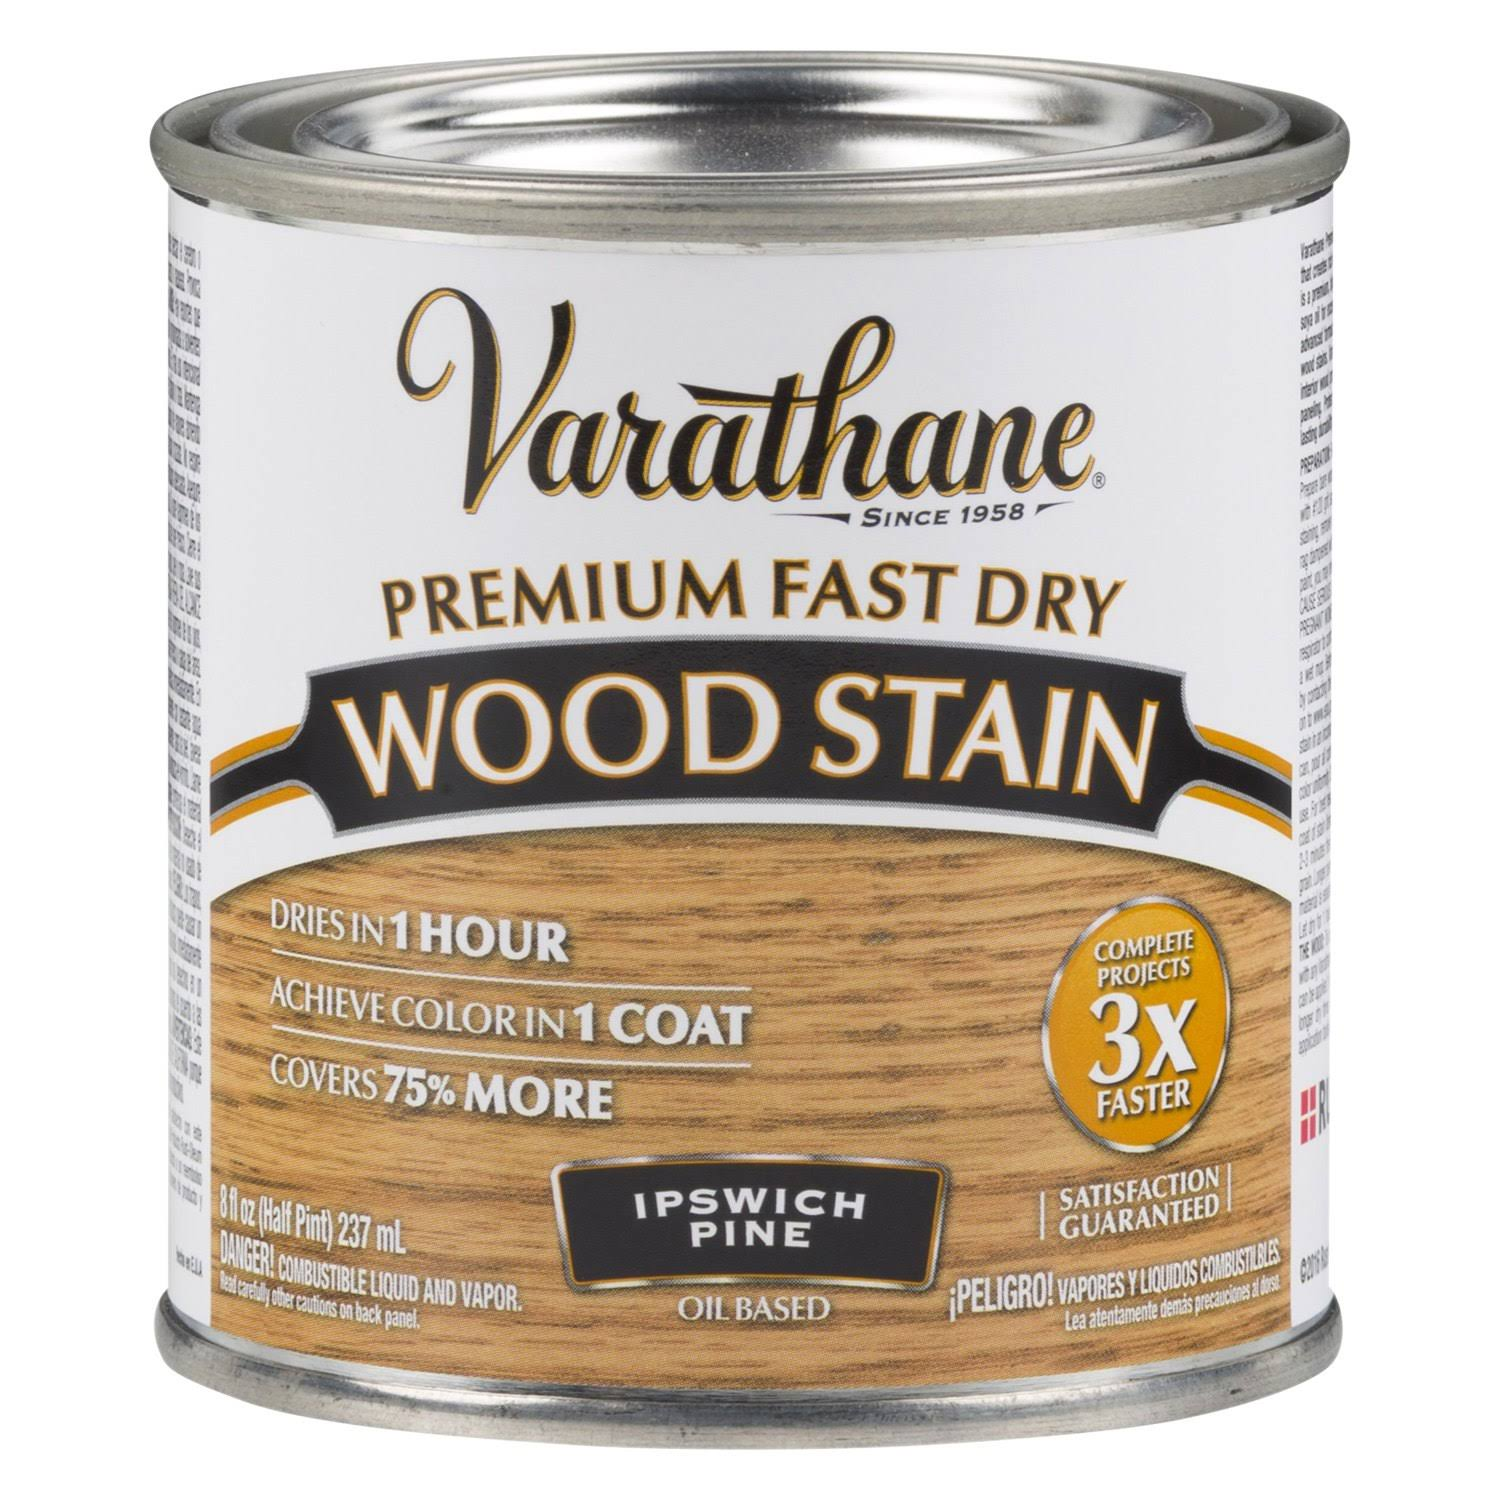 Varathane Fast Dry Oil Wood Stain - 1/2 Pint, Ipswich Pine